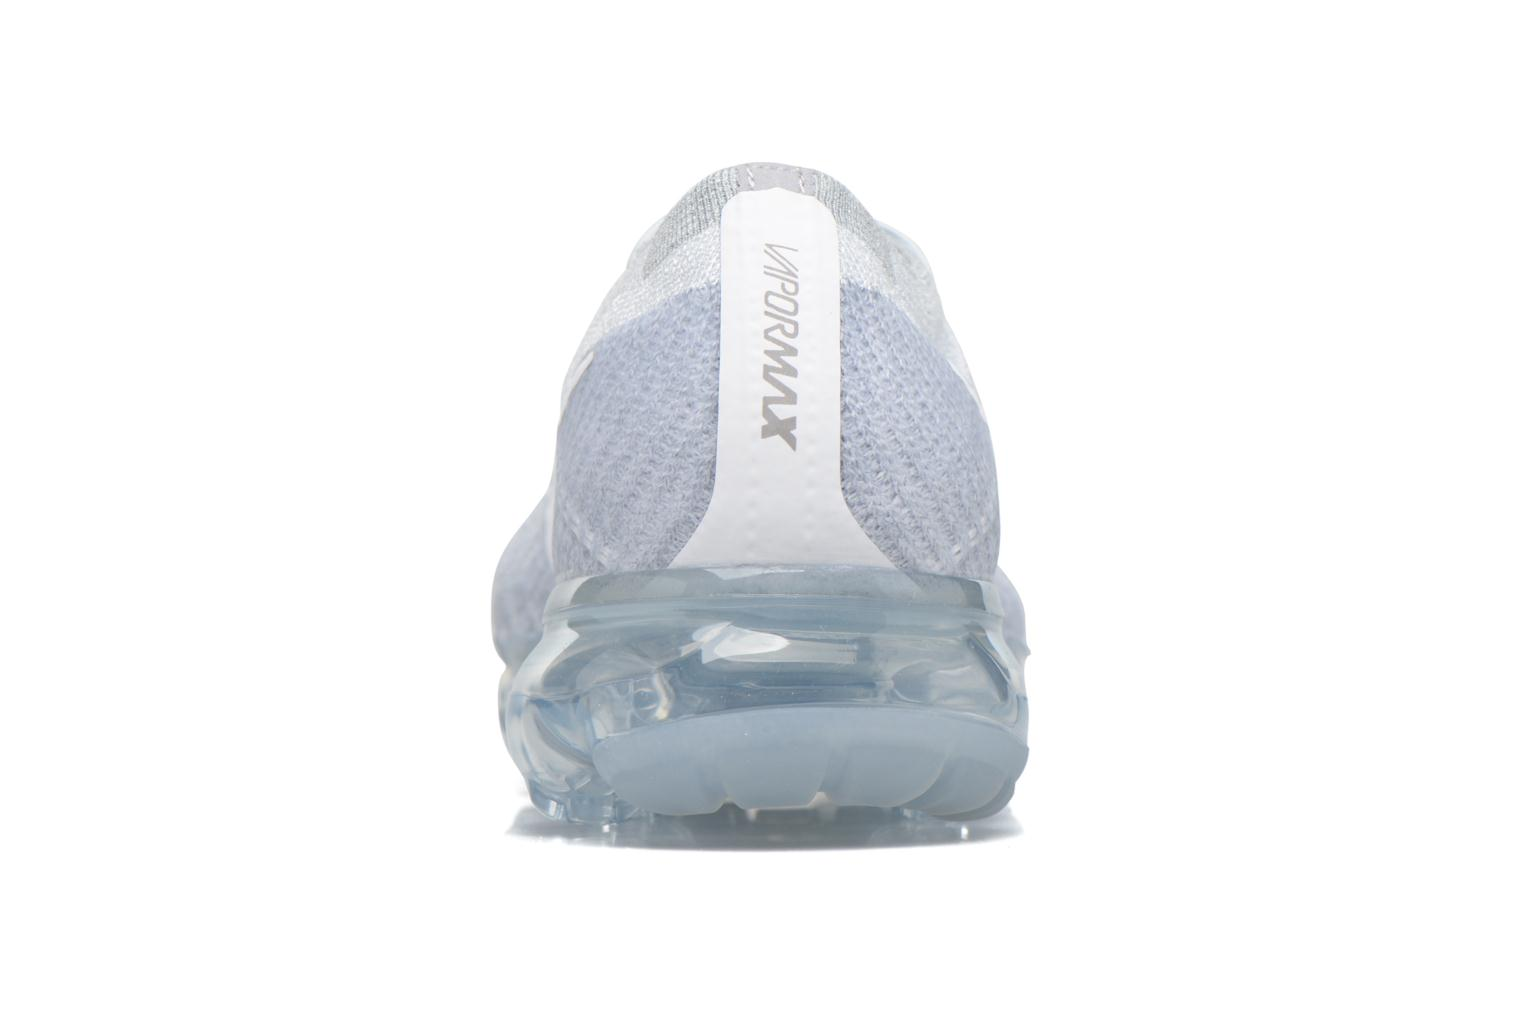 Wmns Nike Air Vapormax Flyknit Pure Platinum/White-Wolf Grey